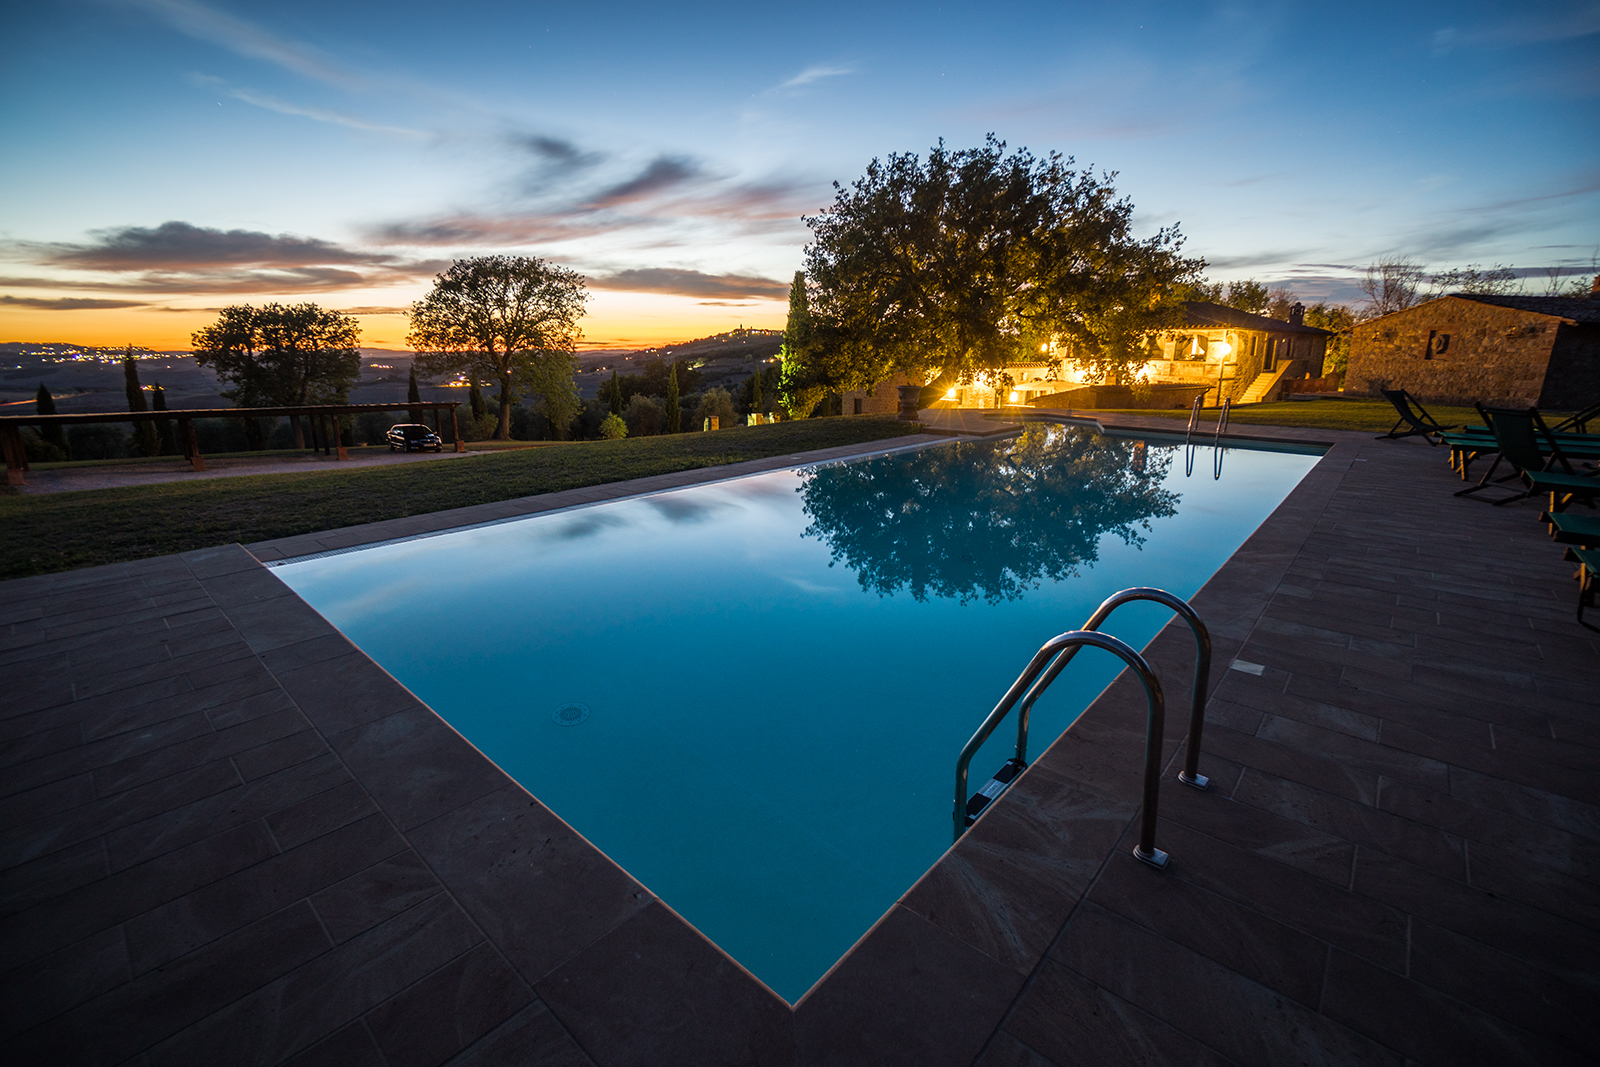 tuscany, italy, hdr, pool, swiming, sunset, bluehour, sony, sony a6500